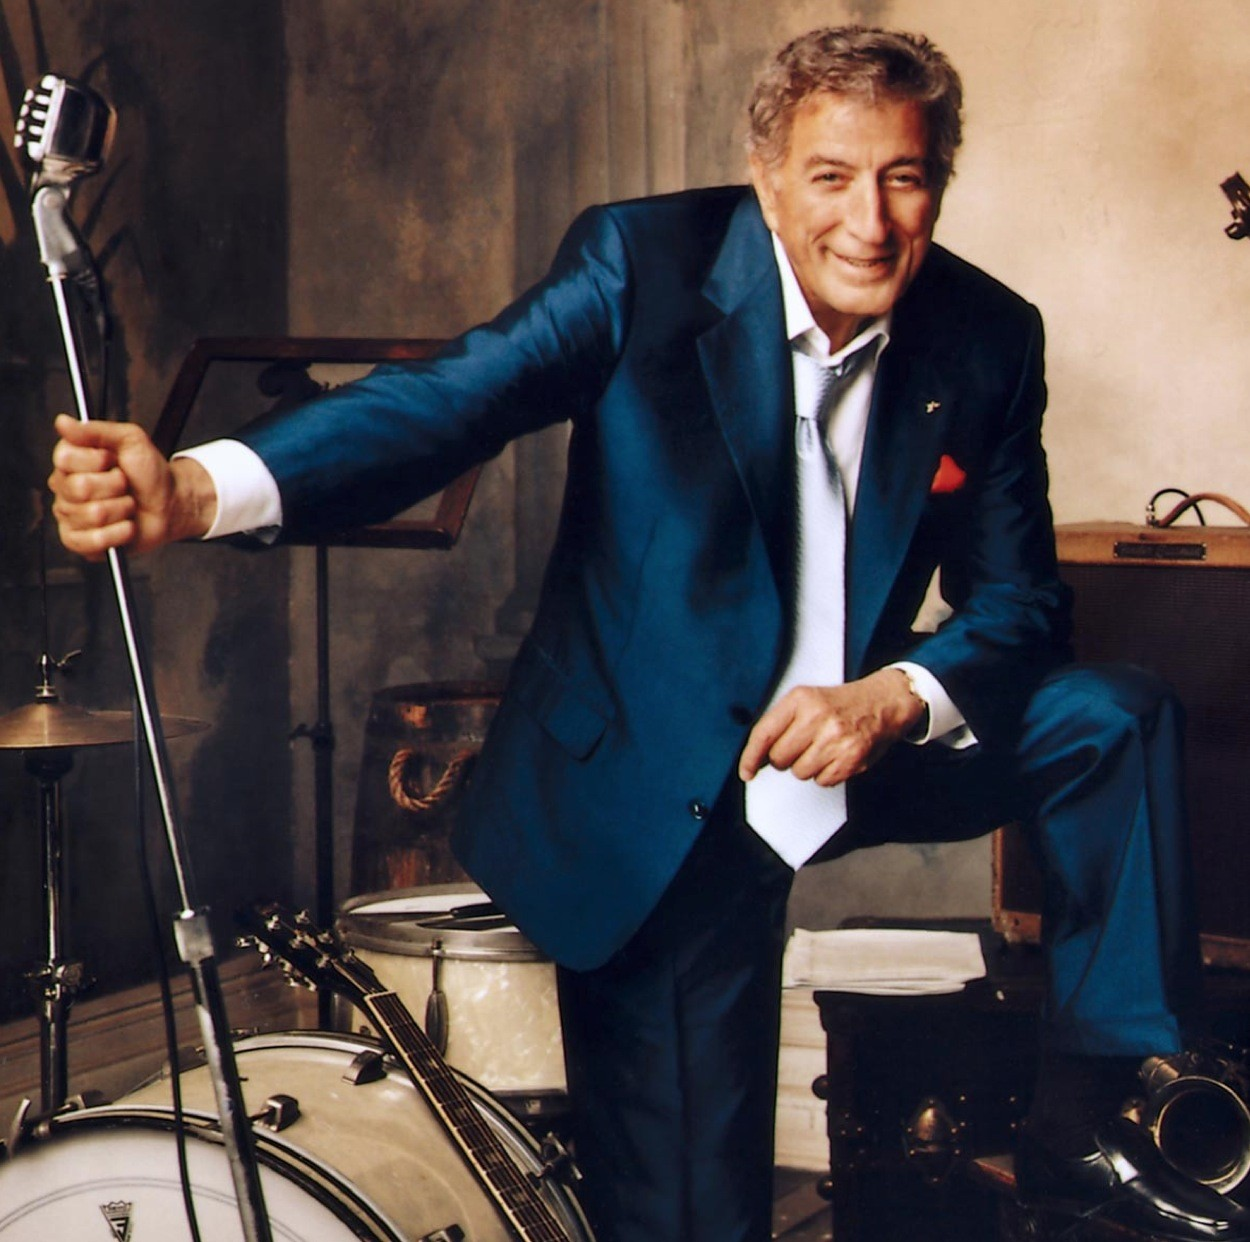 The-Oldest-Artist-in-iTunes-Festival-Goes-on-Stage-Tonight-Tony-Bennett-457860-2